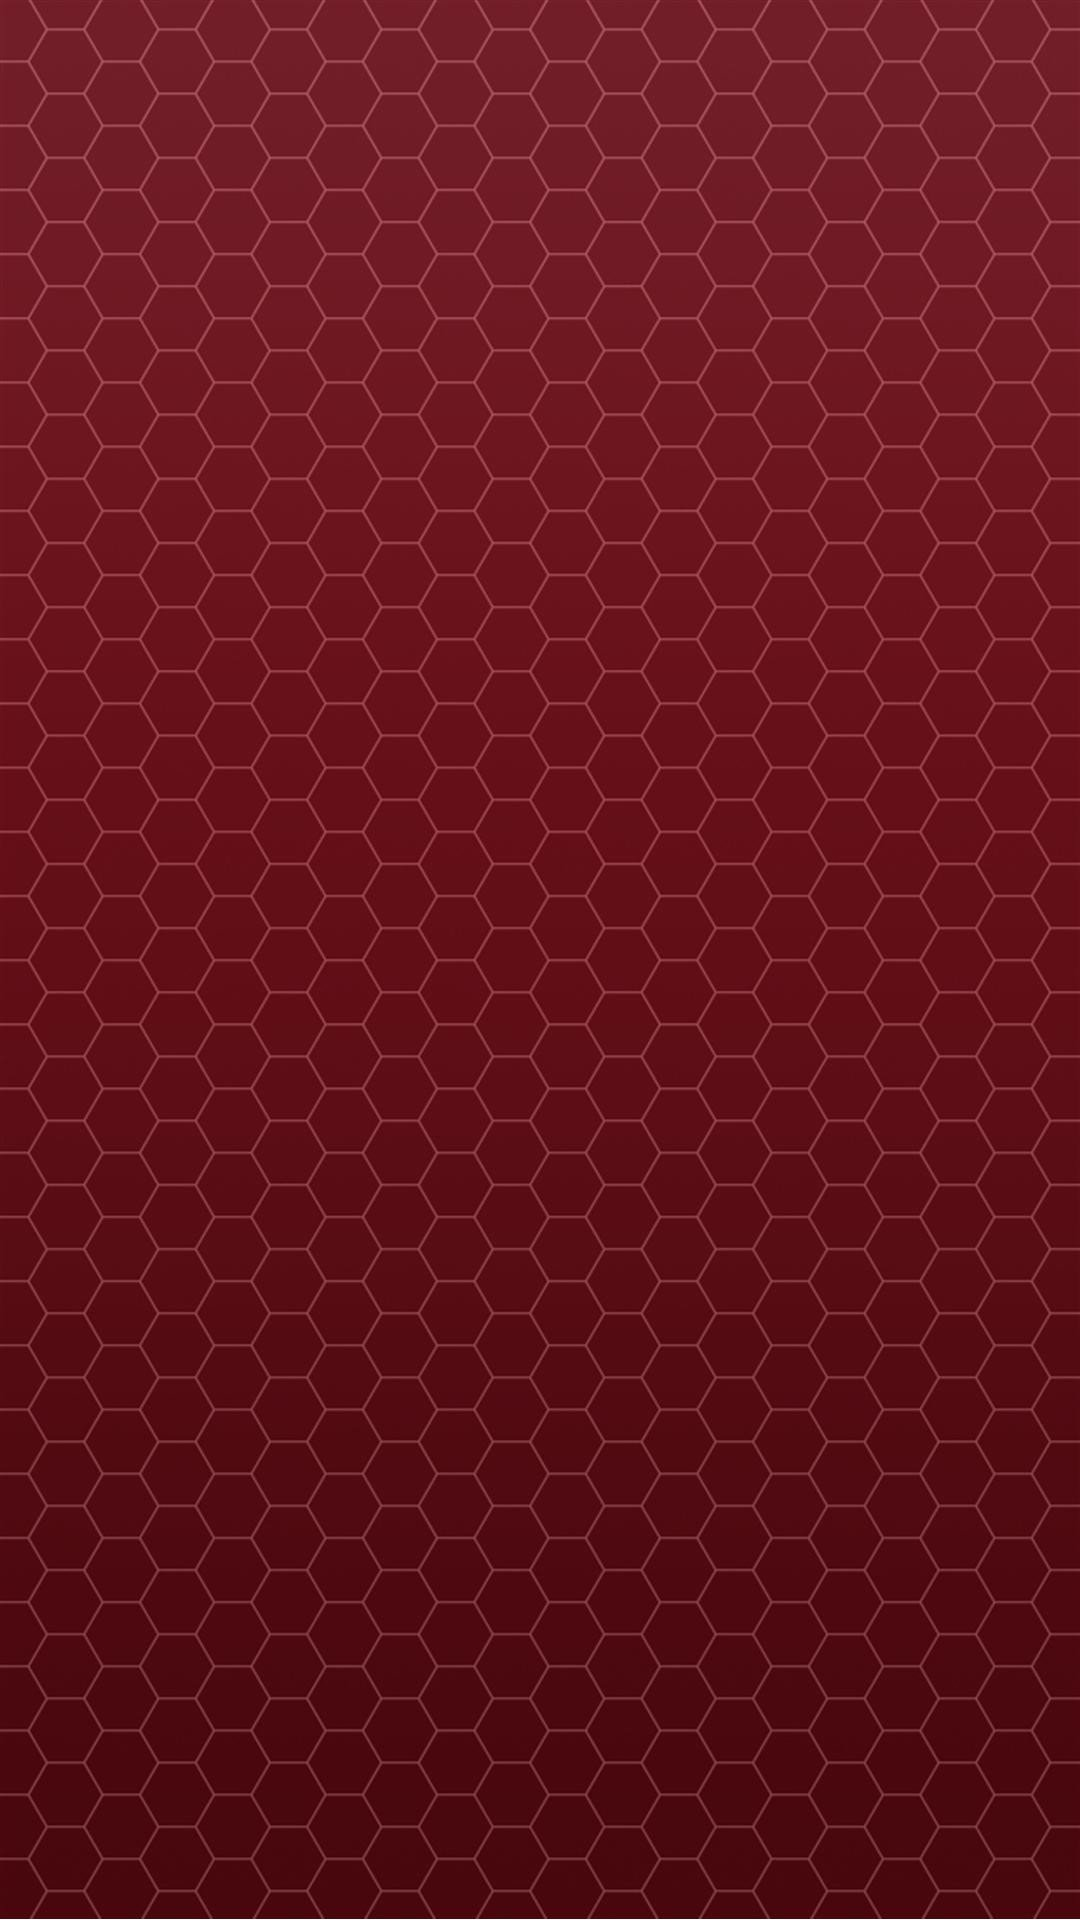 honeycomb red pattern android wallpaper free download